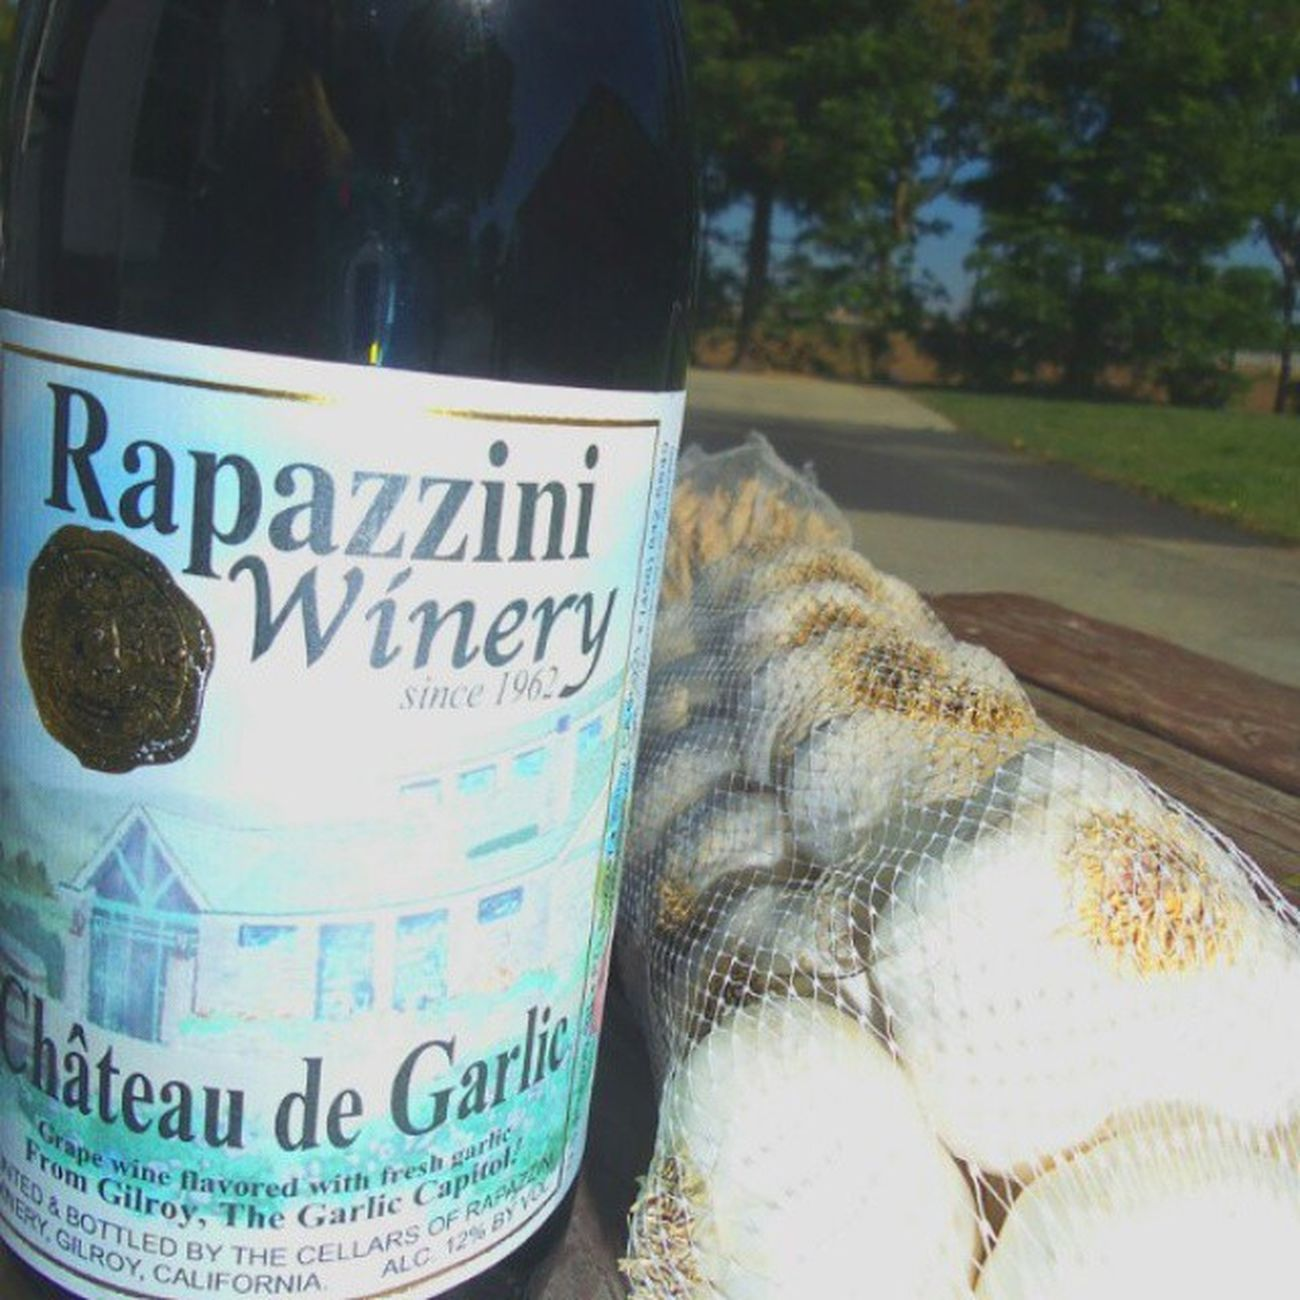 Garlicwine Gilroy Rapazzini Winery A perfect marriage! Cook for me eternally!